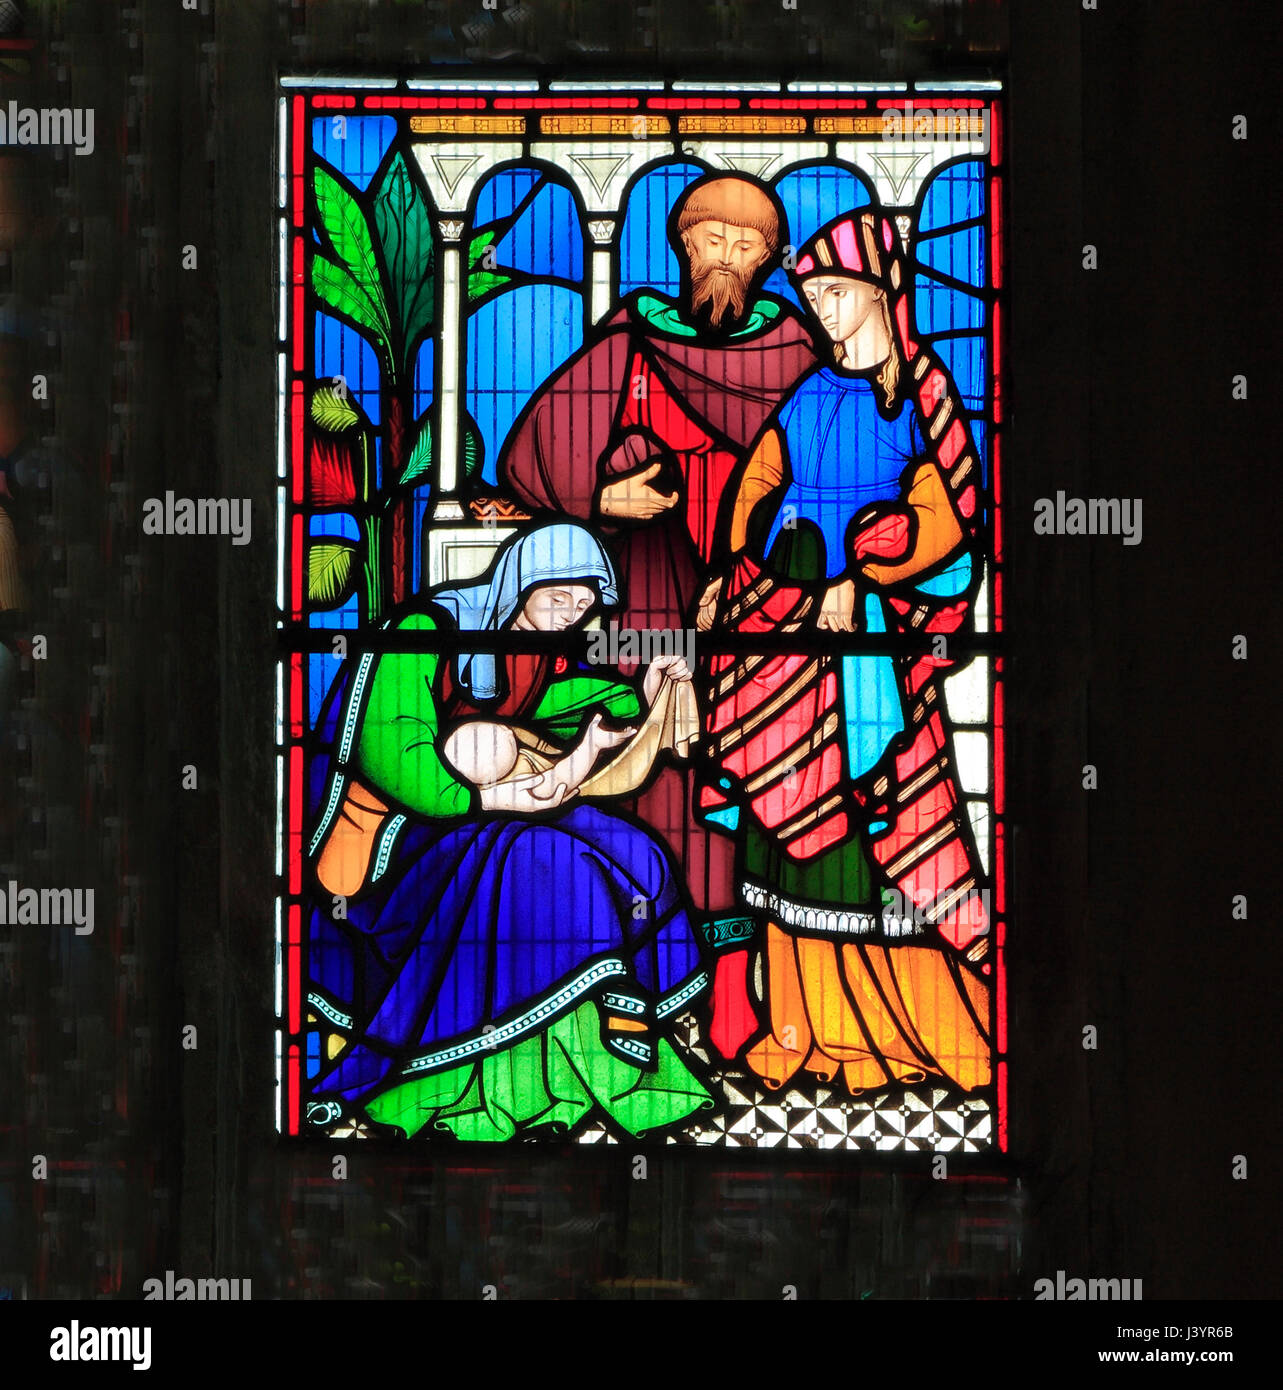 The Story of Ruth, Old Testament, Bible stories, stained glass window - Stock Image